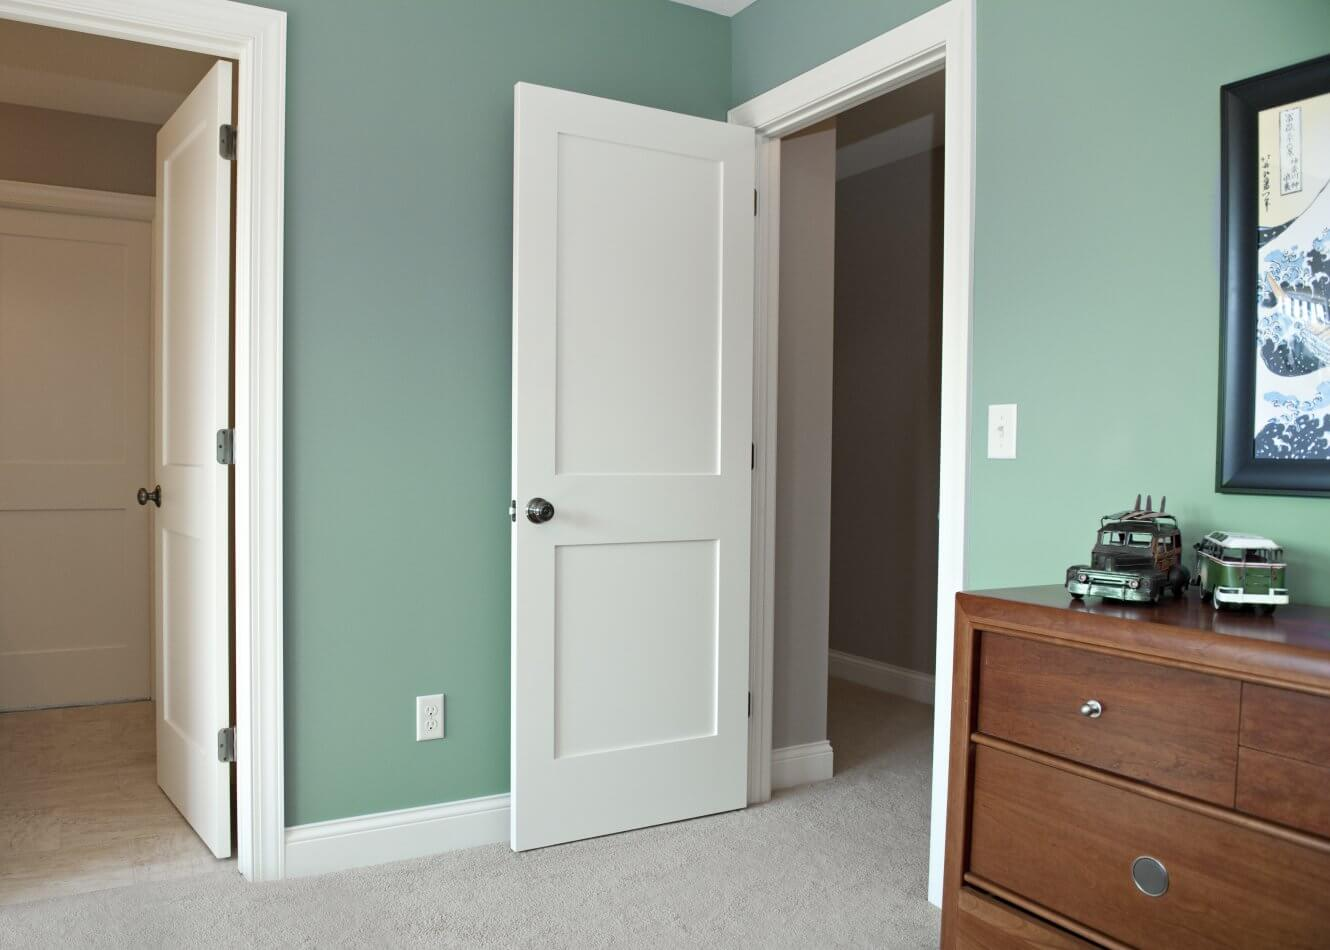 Buying An Interior Door? Here's What You All Need To Consider